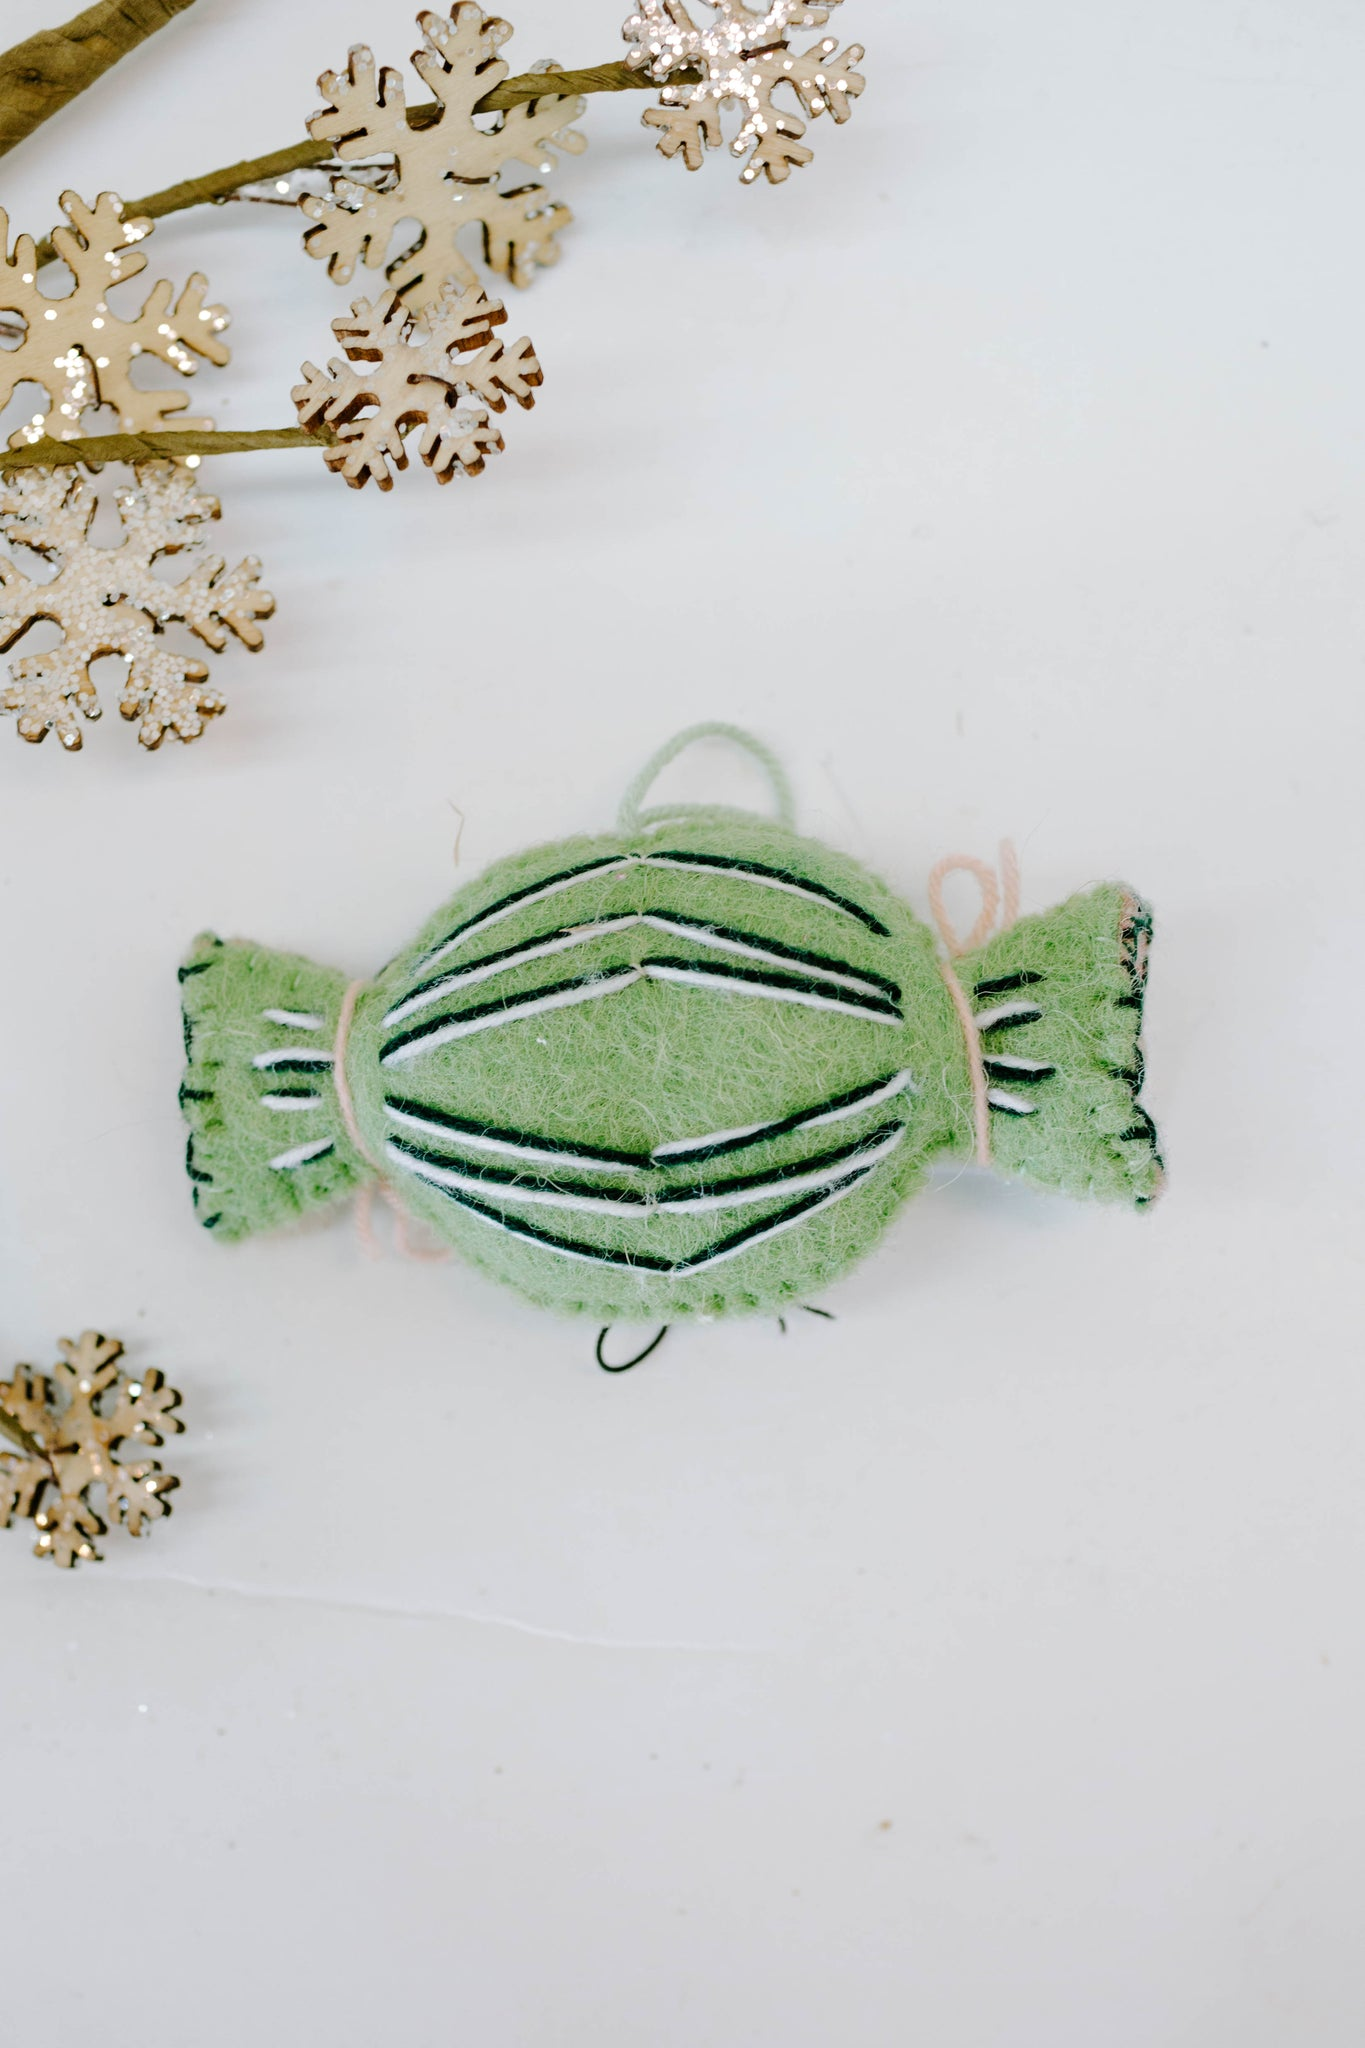 Wool Candy Ornament